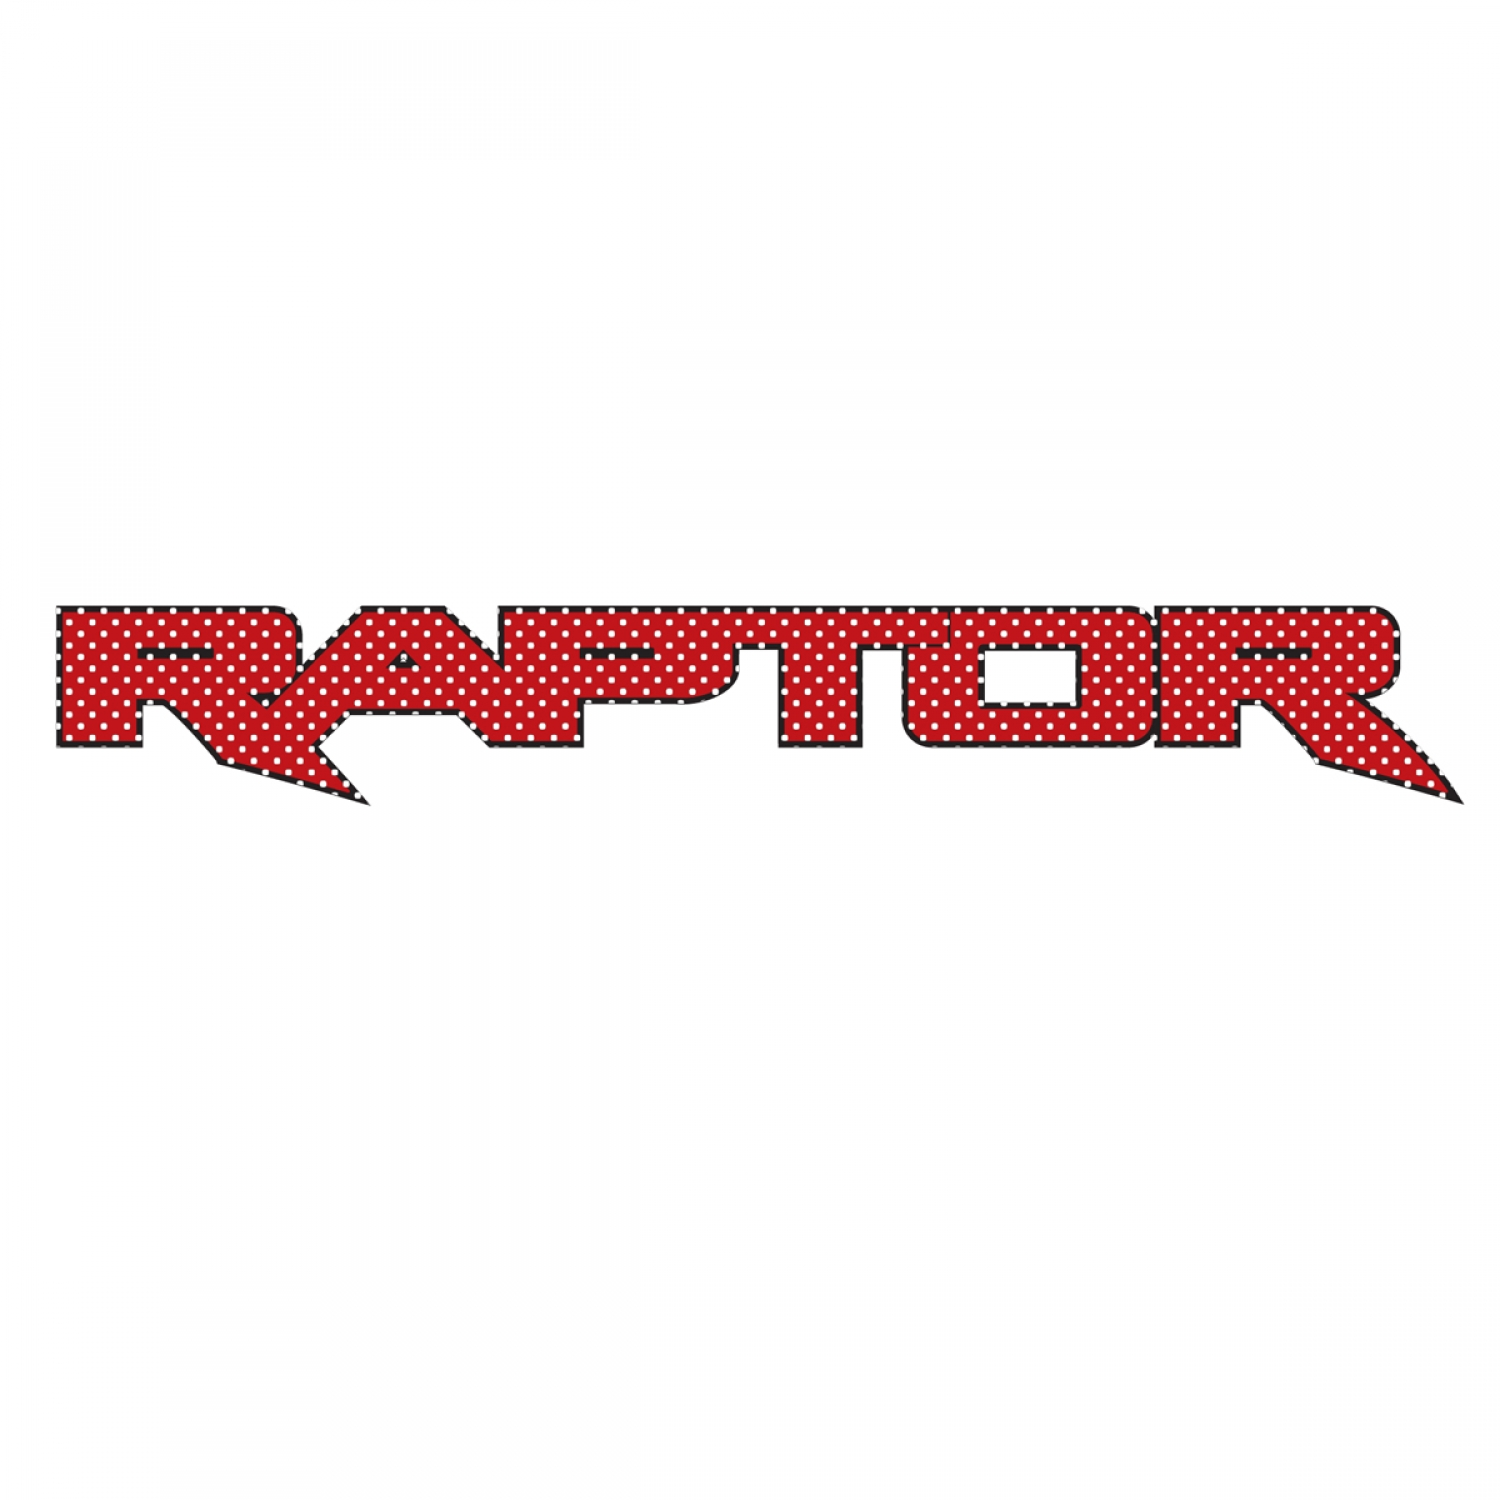 "Ford F150 Raptor 2017 up in Red 12"" 3M Perforated Unobstructed View Window Graphic Decorative Decal"